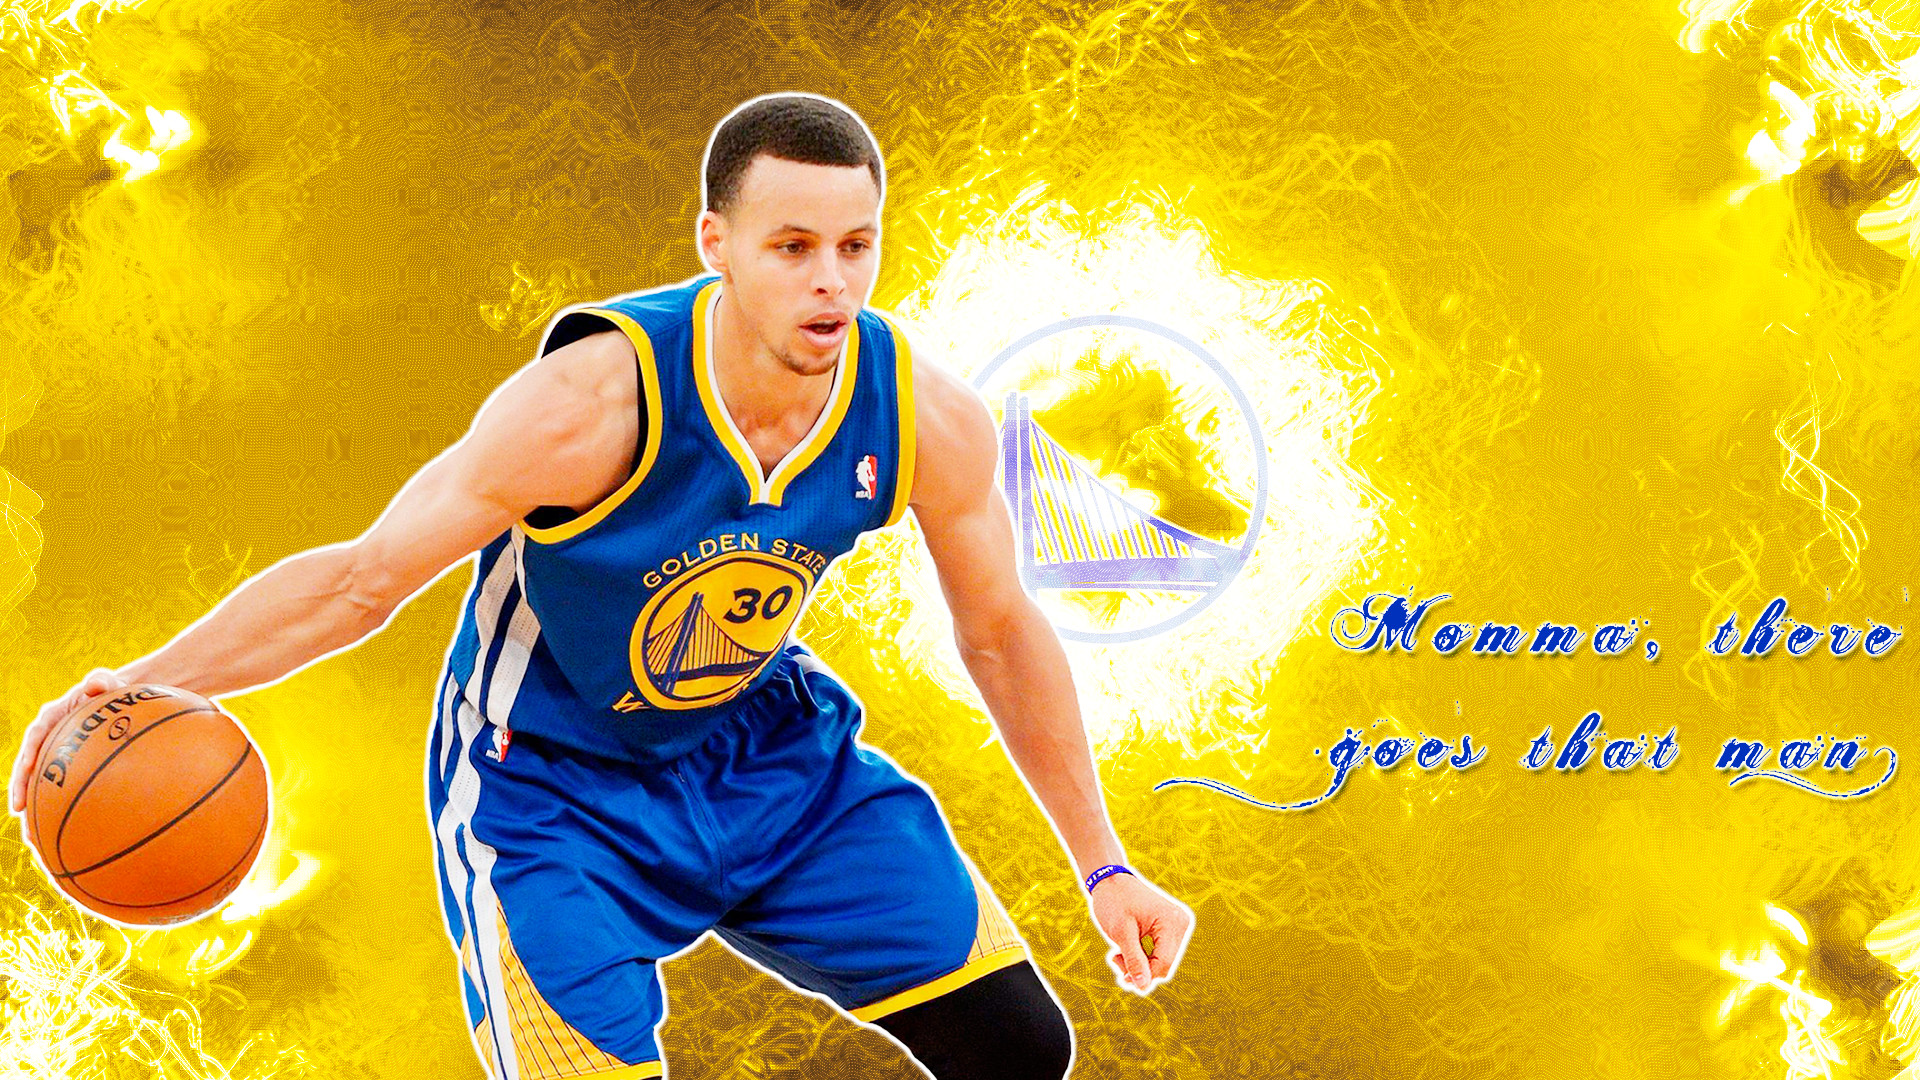 1920x1080 25 best ideas about Golden state warriors wallpaper on Pinterest .